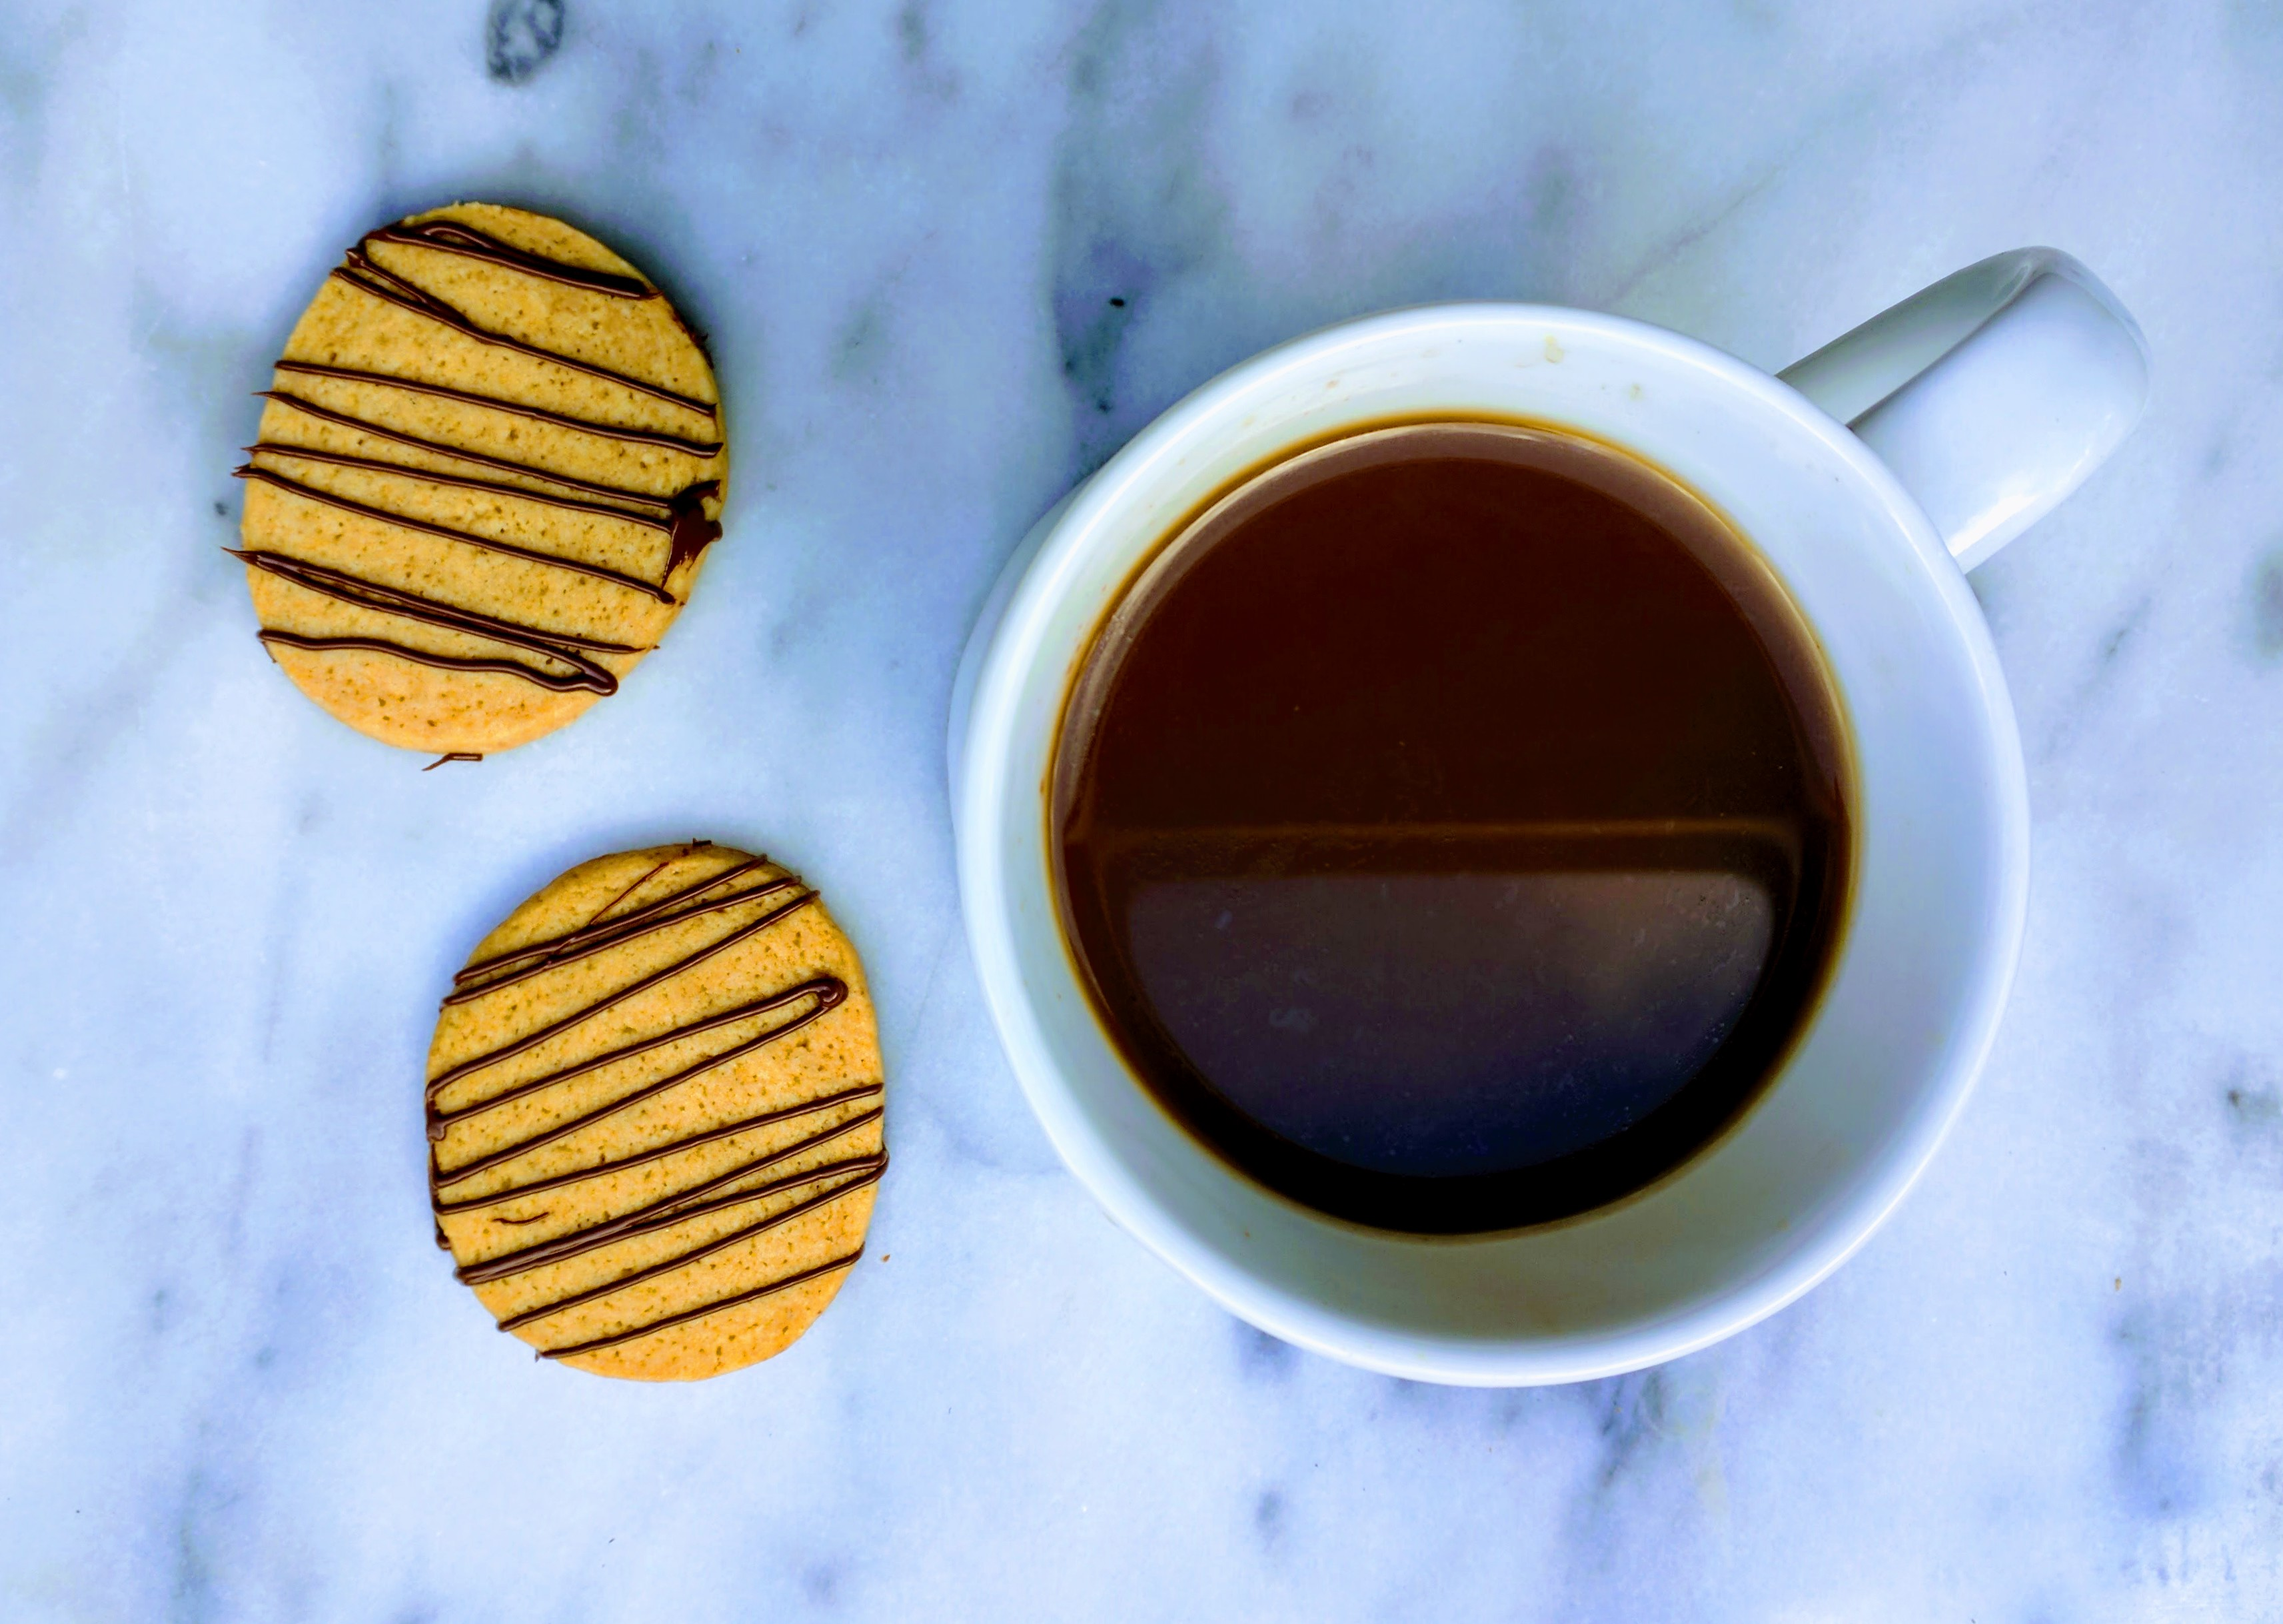 Sugar cookies and coffee